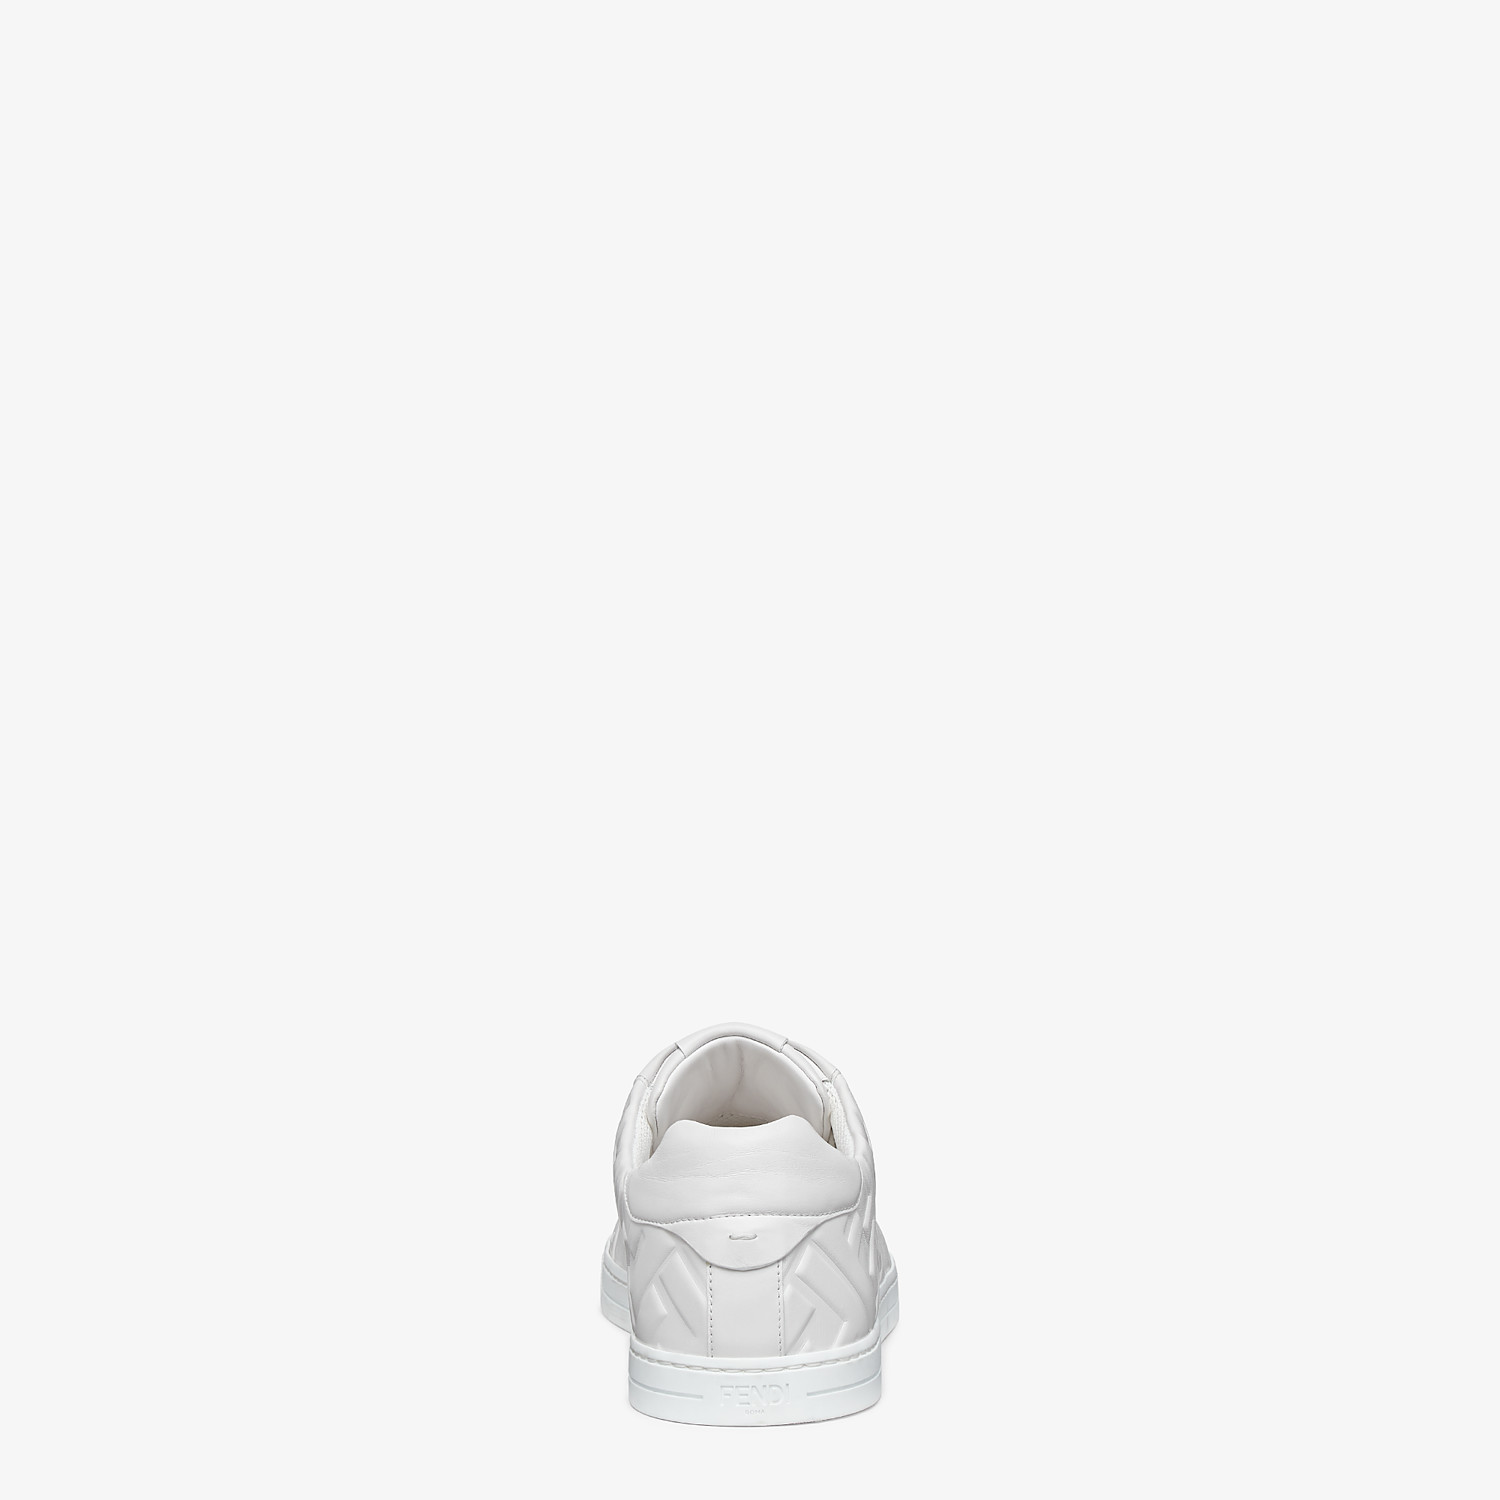 FENDI SNEAKERS - White nappa leather low-tops - view 3 detail